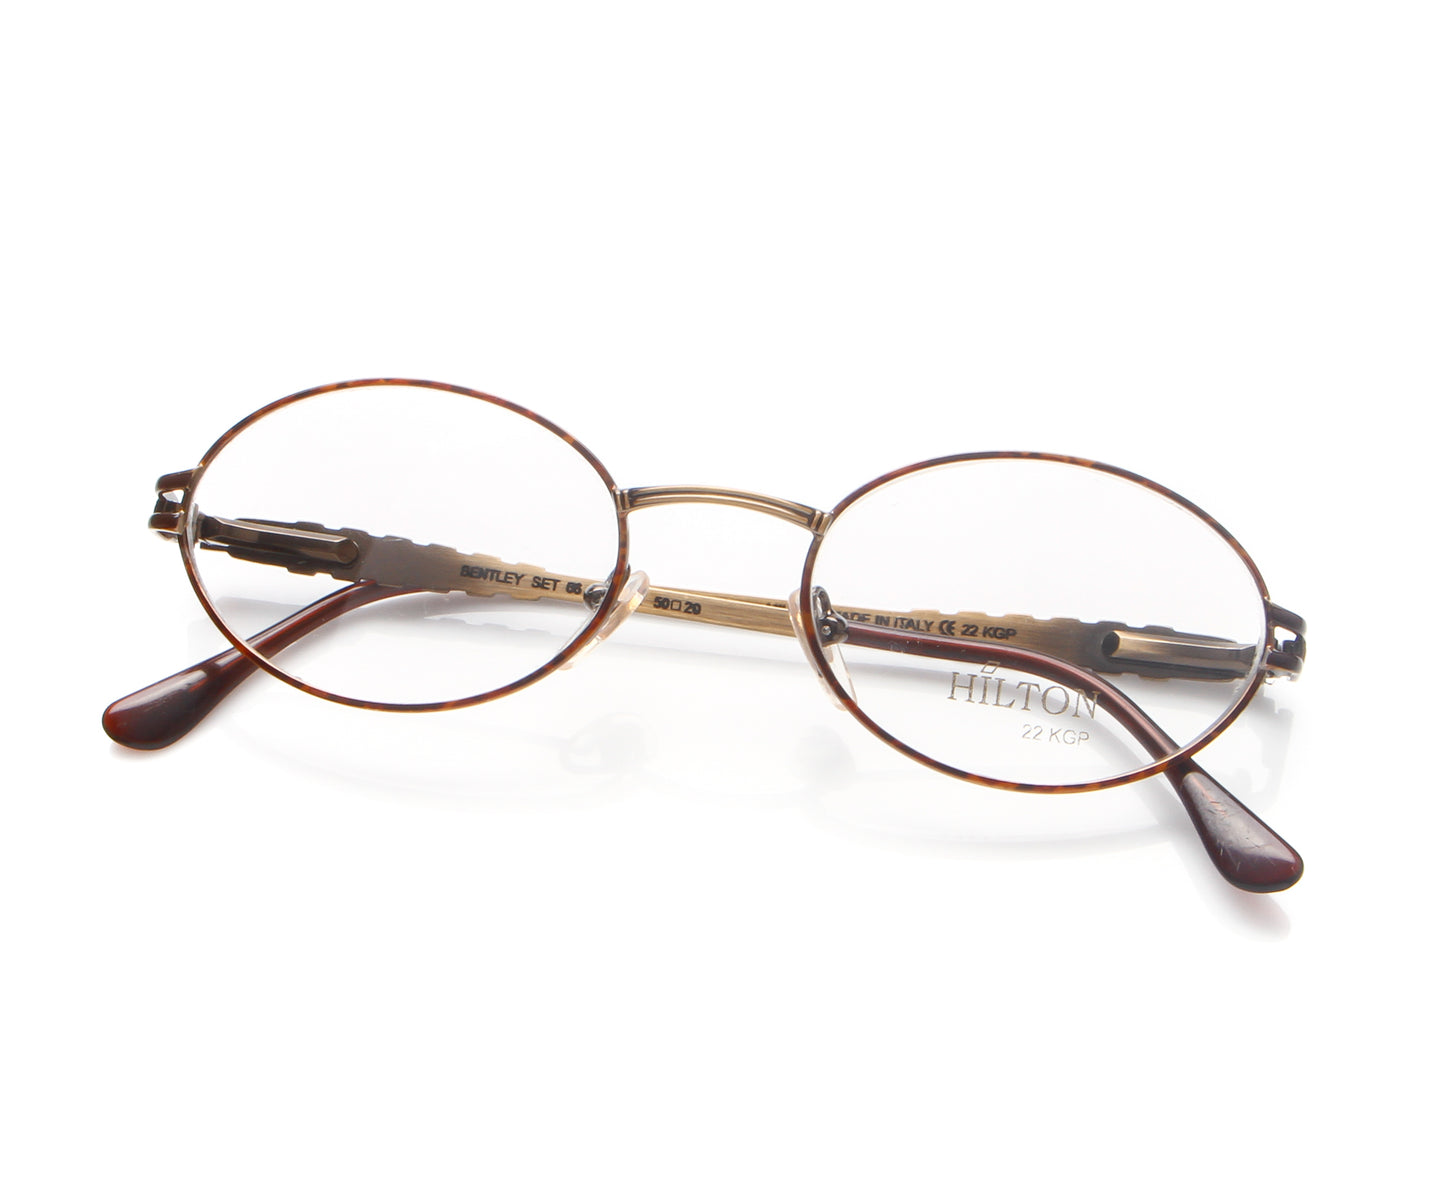 Vintage Hilton Bentley 66 02 22 KGP Thumb, Hilton , glasses frames, eyeglasses online, eyeglass frames, mens glasses, womens glasses, buy glasses online, designer eyeglasses, vintage sunglasses, retro sunglasses, vintage glasses, sunglass, eyeglass, glasses, lens, vintage frames company, vf